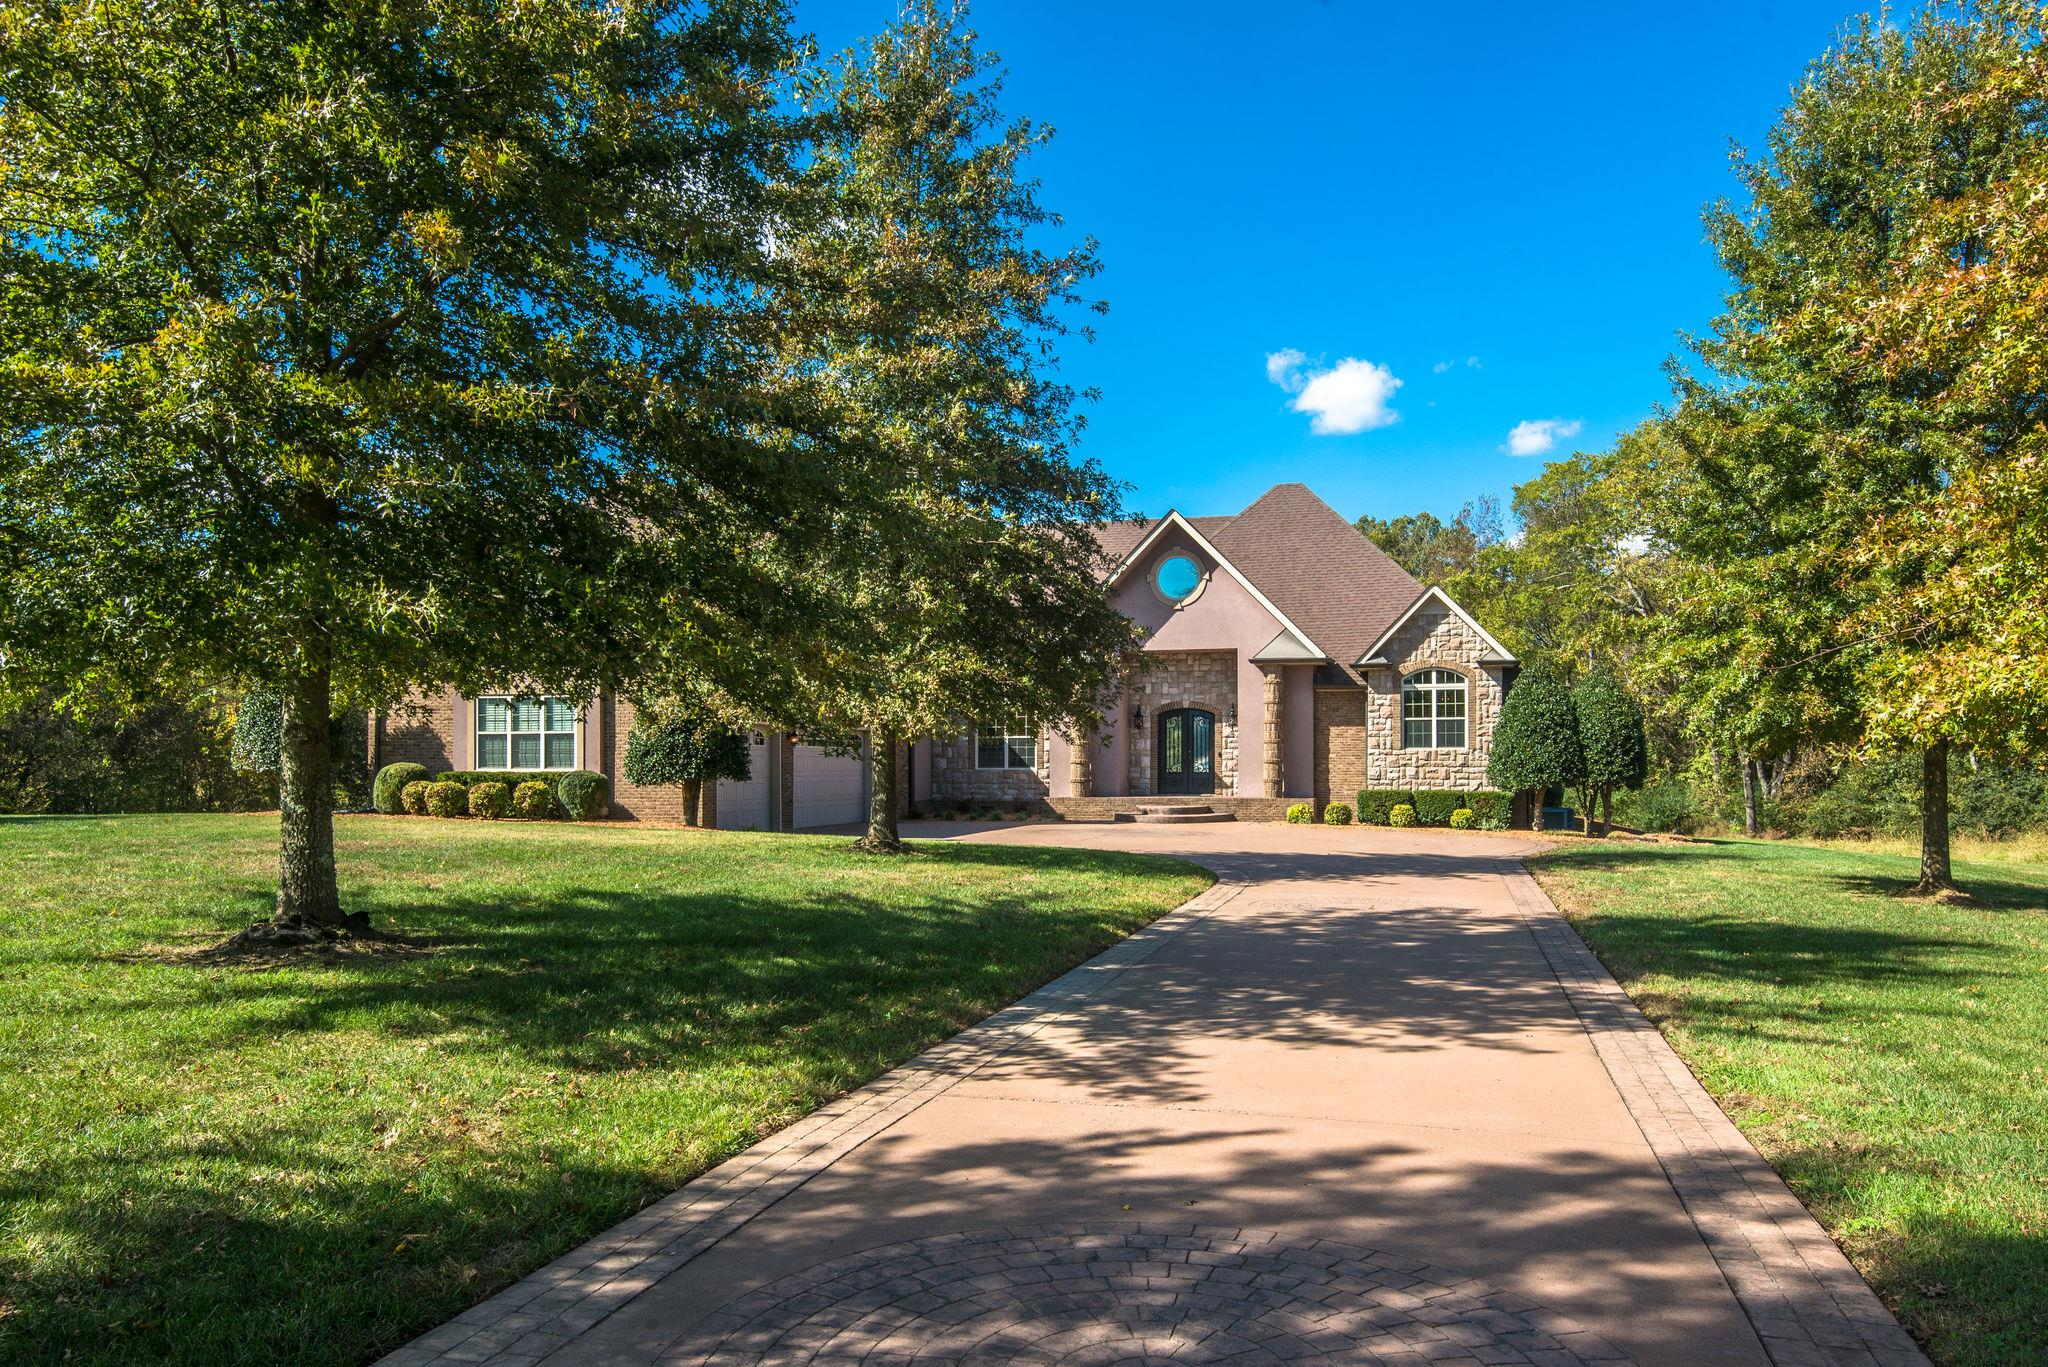 119 Water Wood Dr, Clarksville, TN 37043 - Clarksville, TN real estate listing